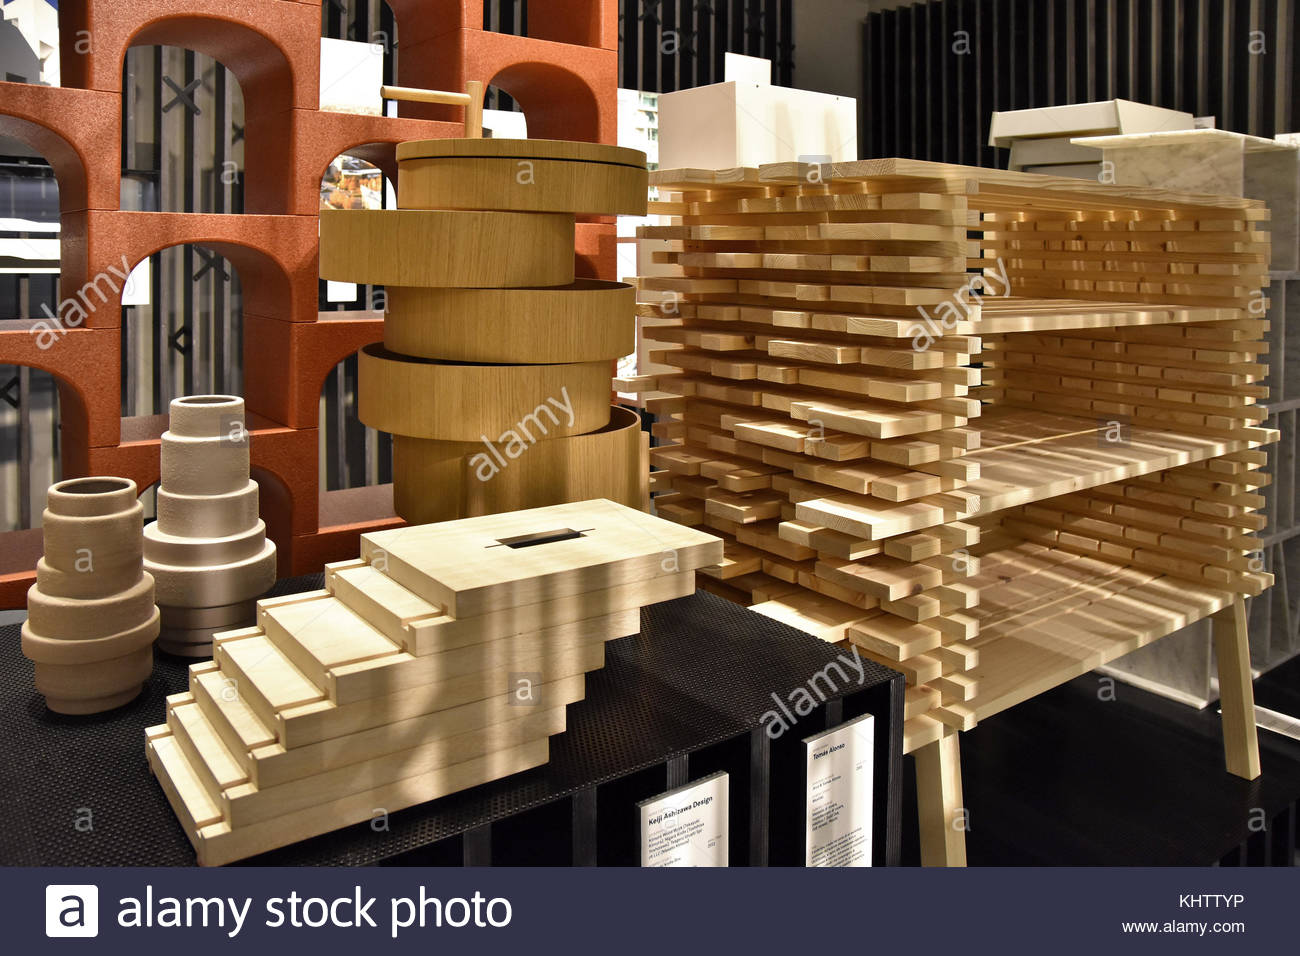 Woodwork designs Architecture As Art exhibition, Milan Triennale 2016 in Italy Europe. - Stock Image